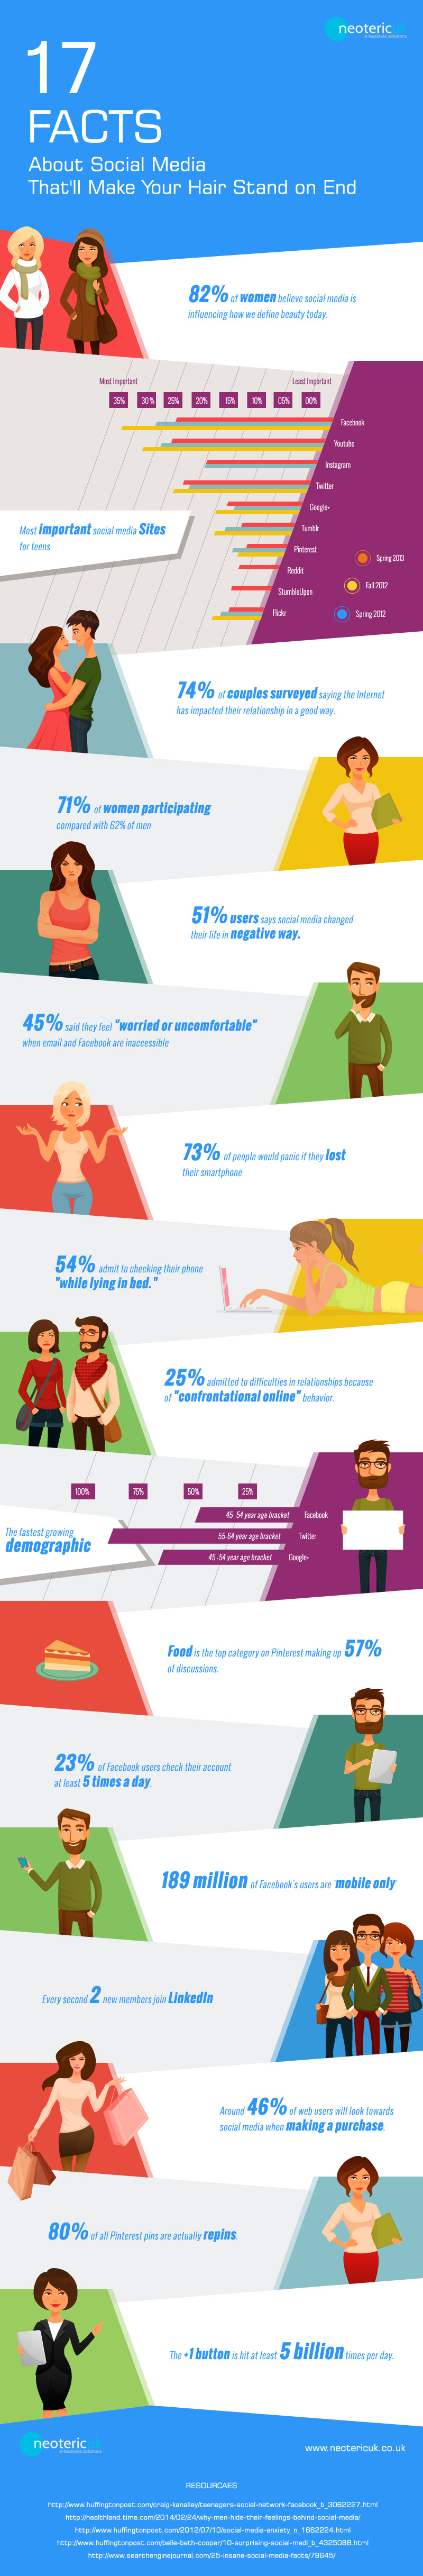 17 Facts about Social Media That'll Make Your Hair Stand on End! [Info-Graphics]